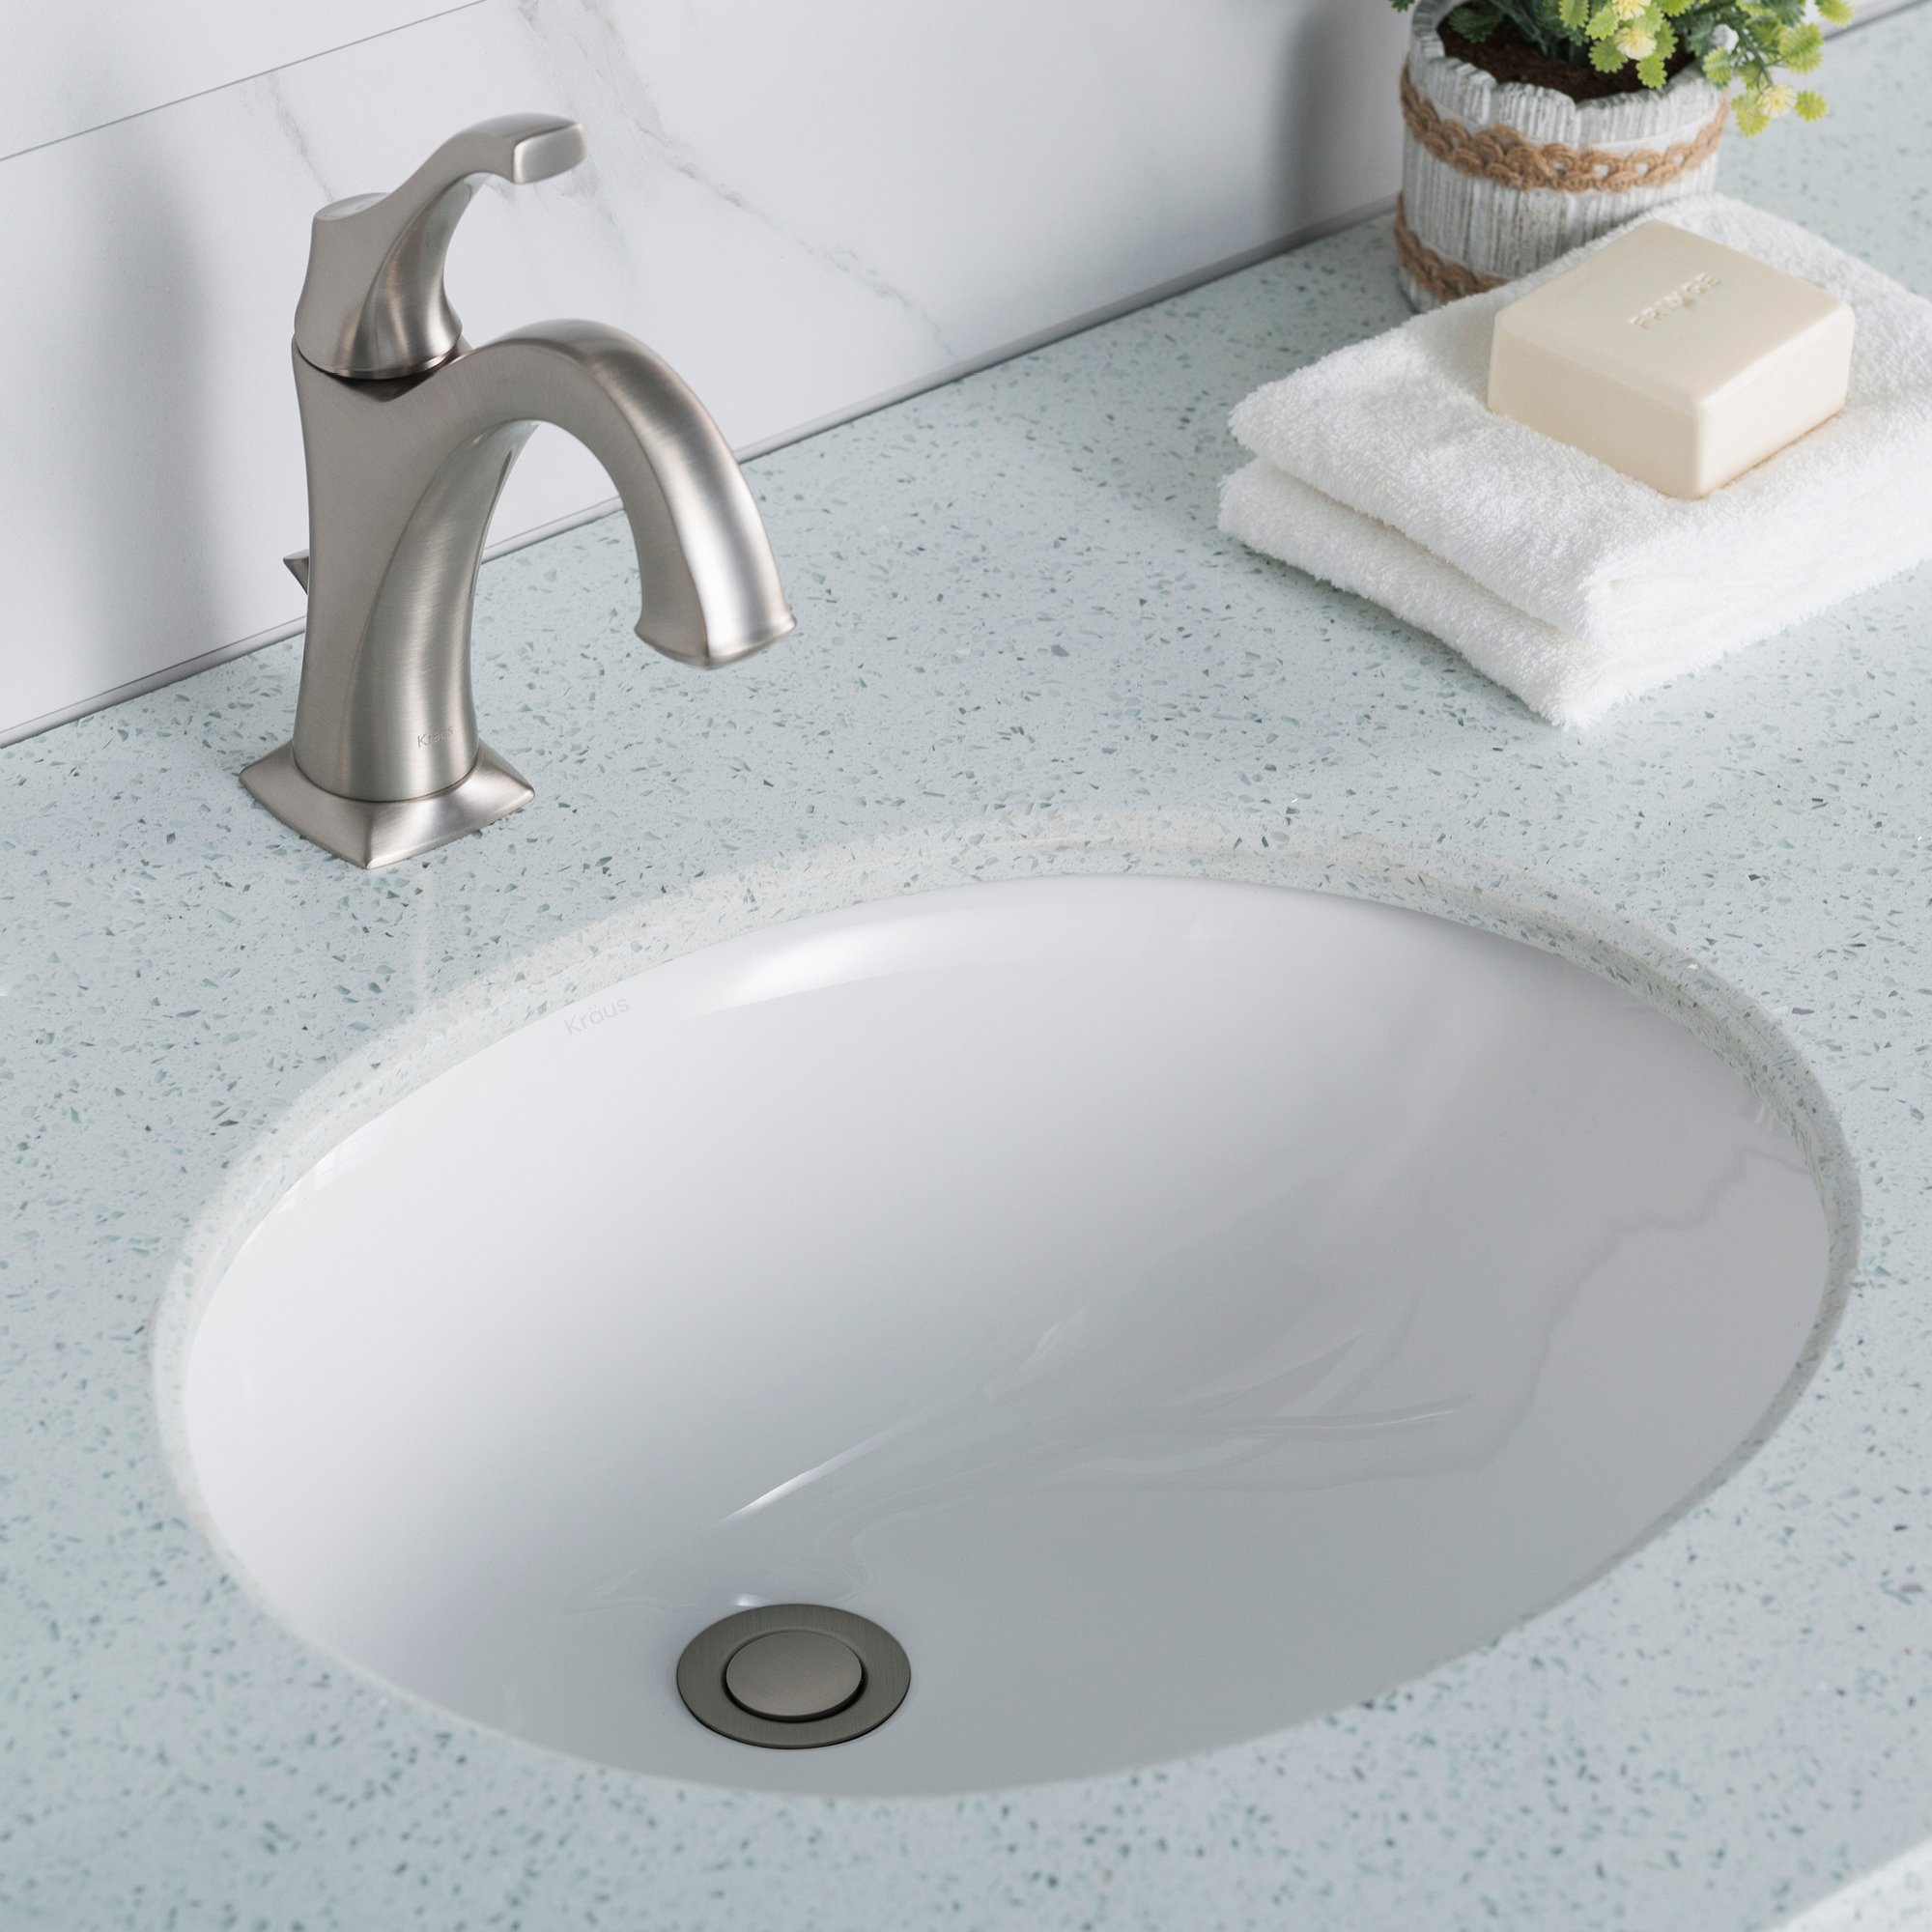 KRAUS Elavo 17 Inch Oval Undermount Porcelain Ceramic Bathroom Sink in White with Overflow, KCU-211 by Kraus (Image #2)